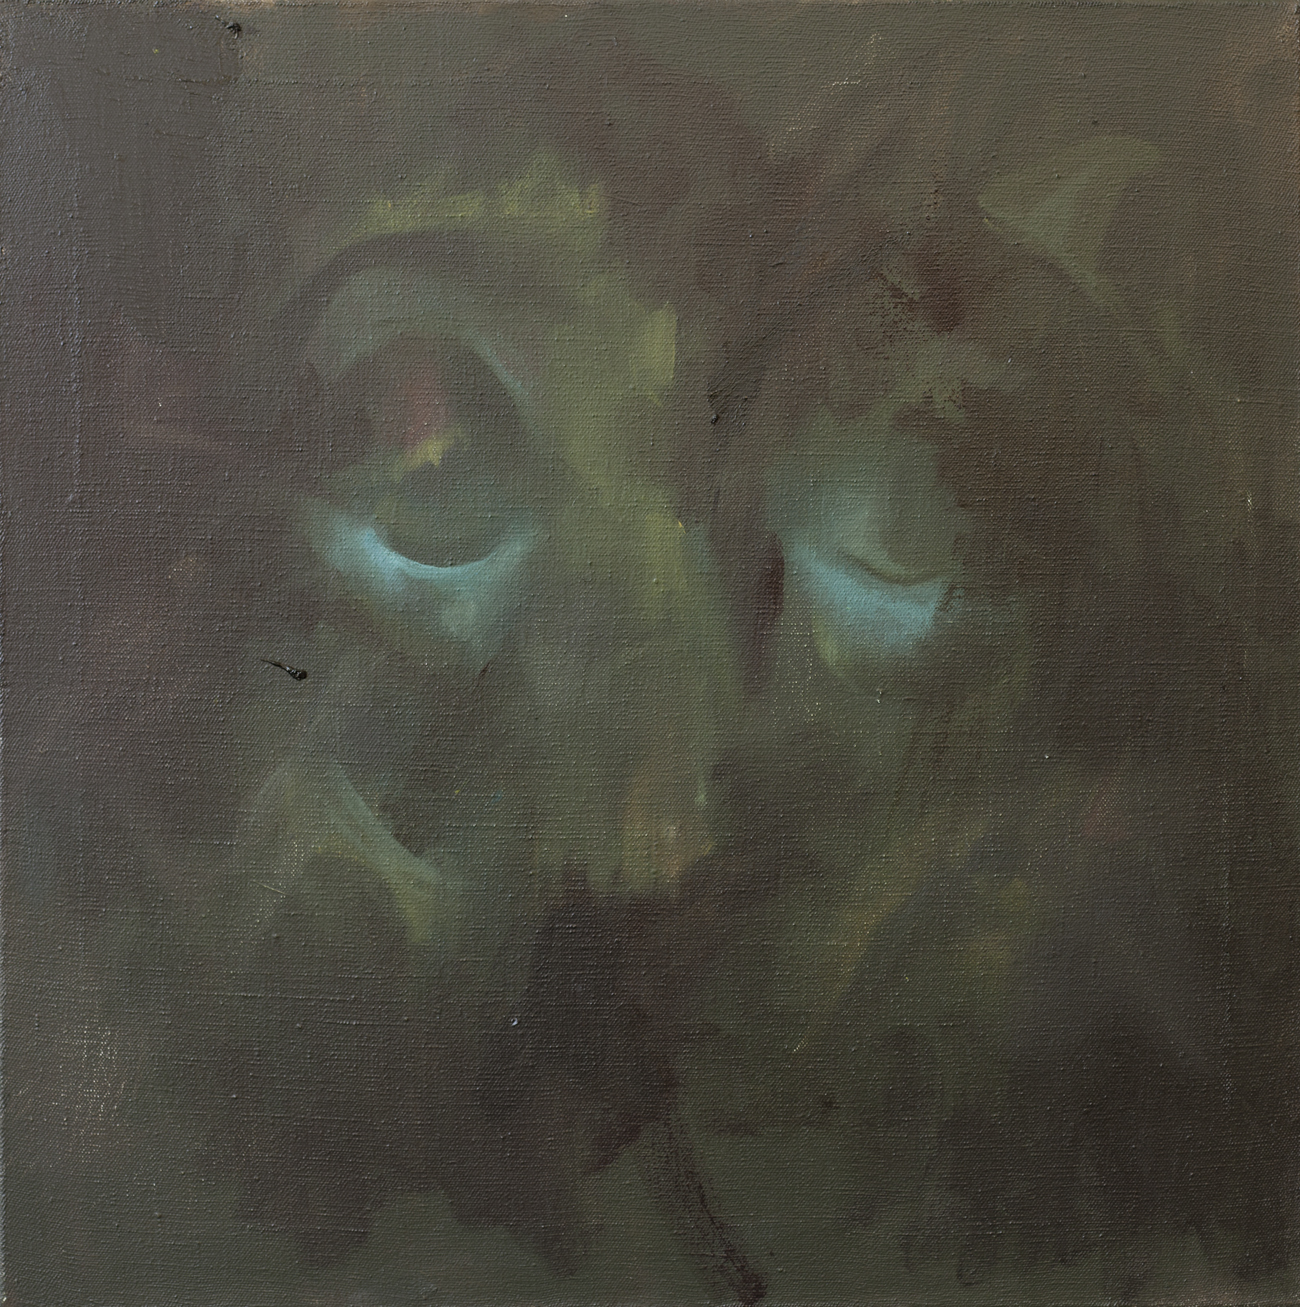 Maskmess, Oil on canvas, 60x60cm, 2012